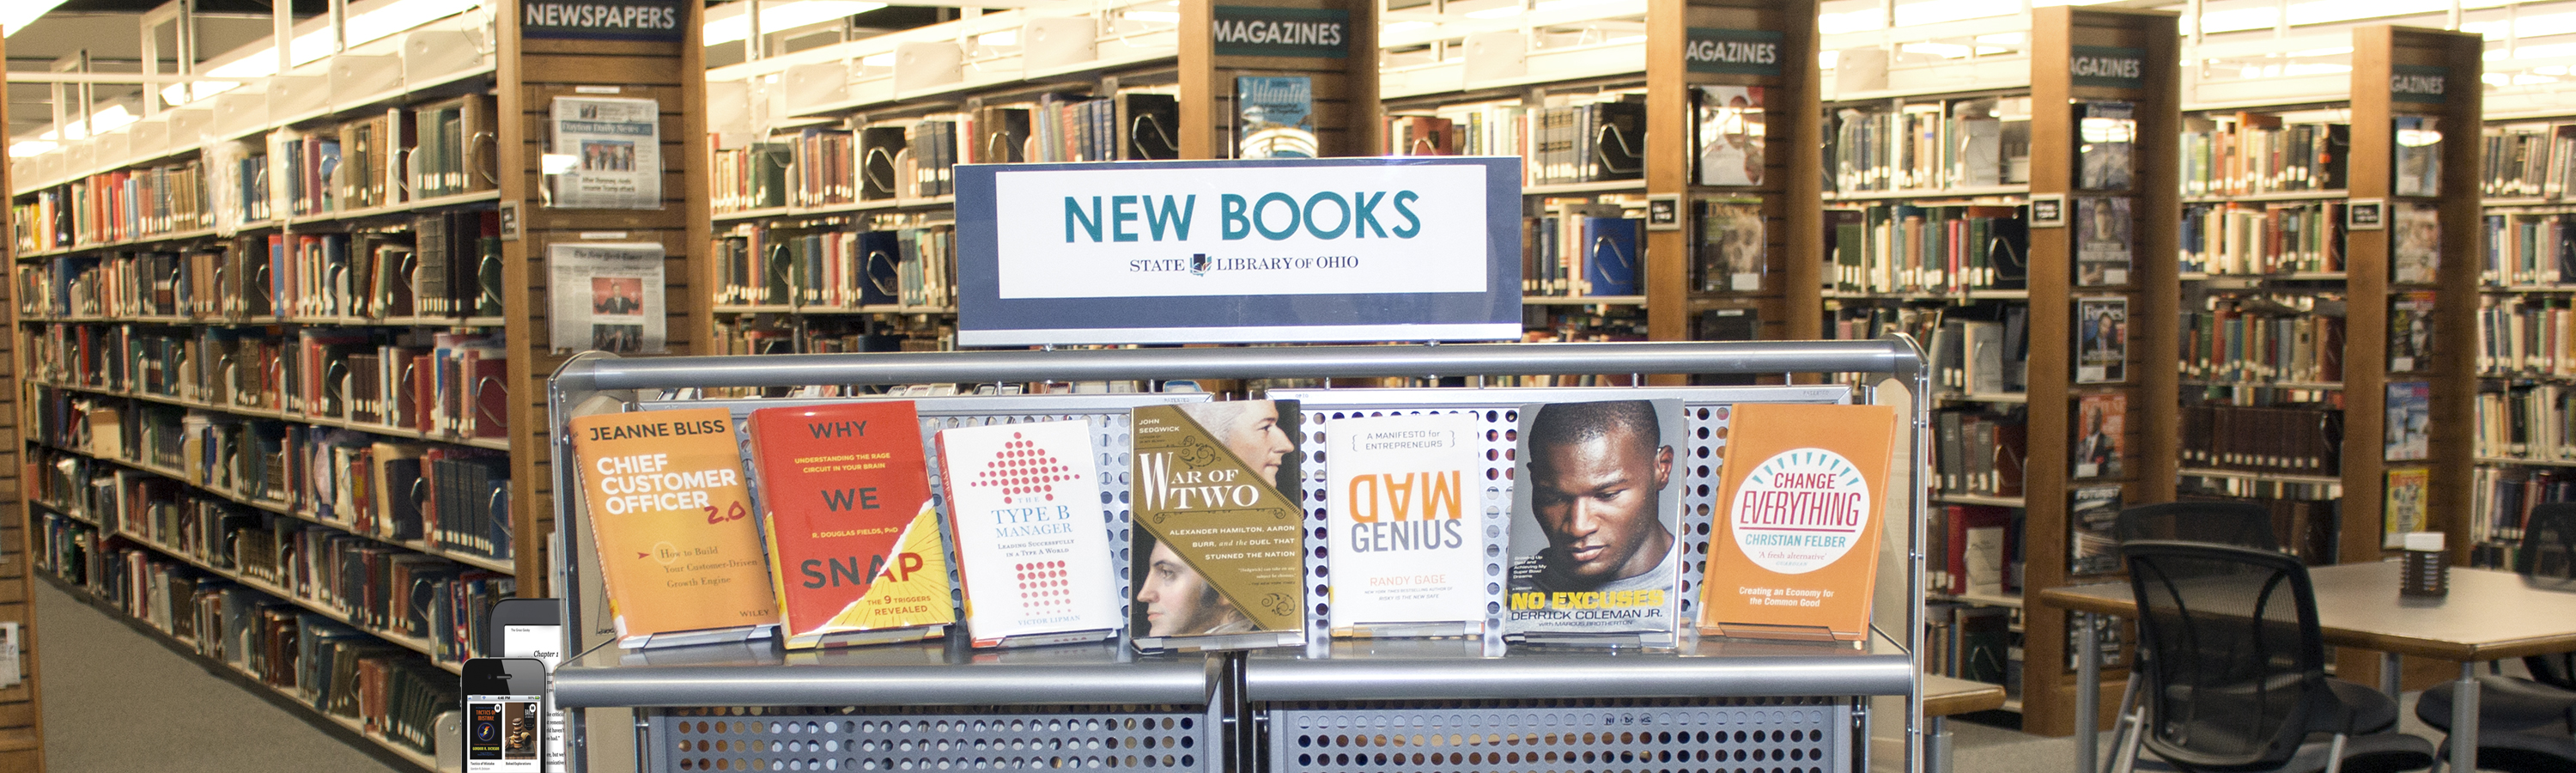 Photo of New Books display with mobile devices at the State Library of Ohio